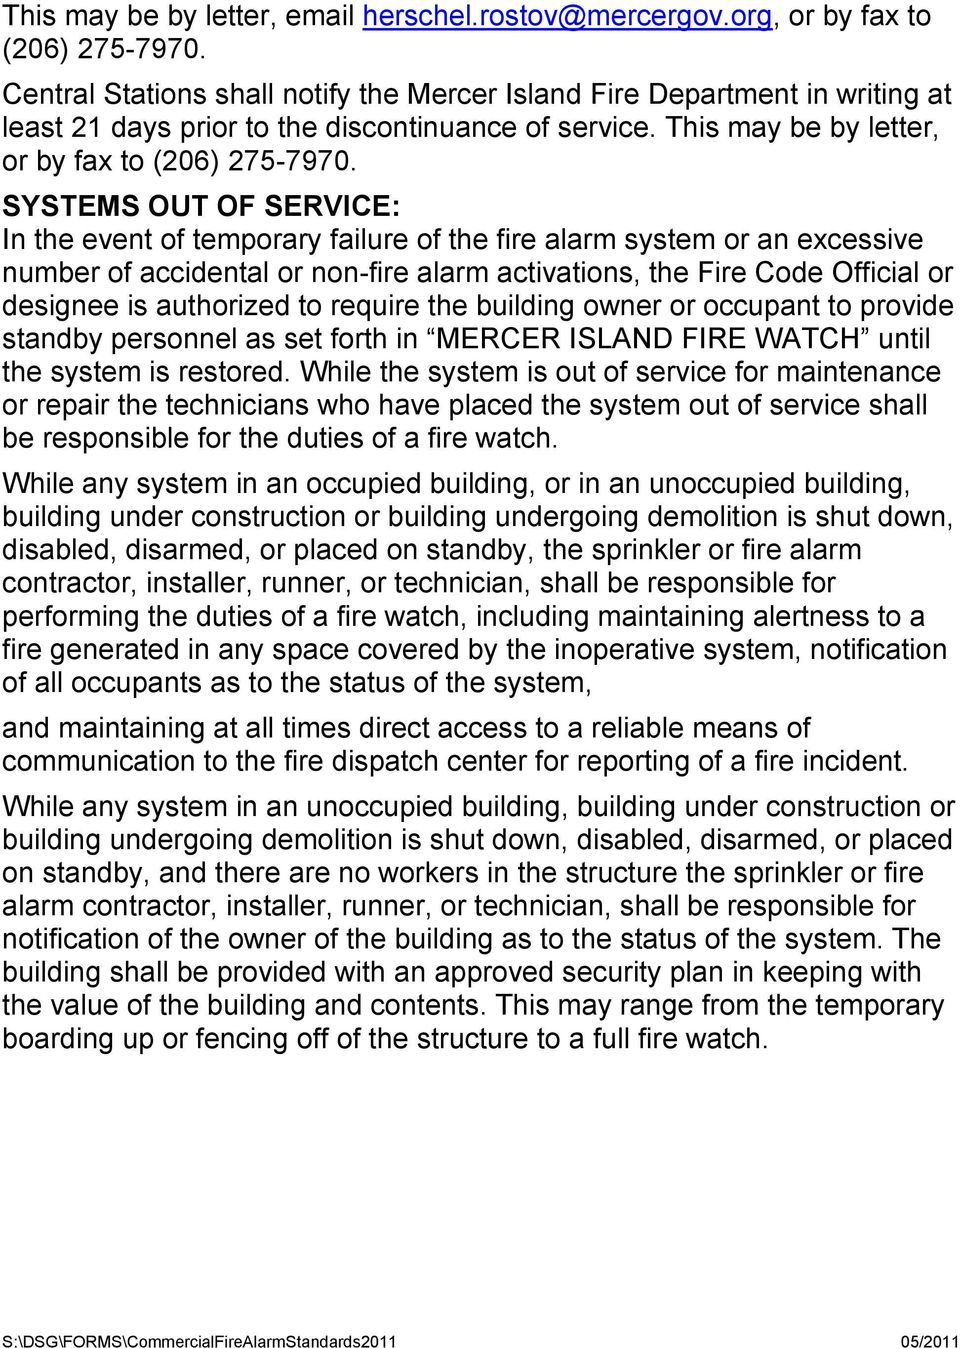 SYSTEMS OUT OF SERVICE: In the event of temporary failure of the fire alarm system or an excessive number of accidental or non-fire alarm activations, the Fire Code Official or designee is authorized